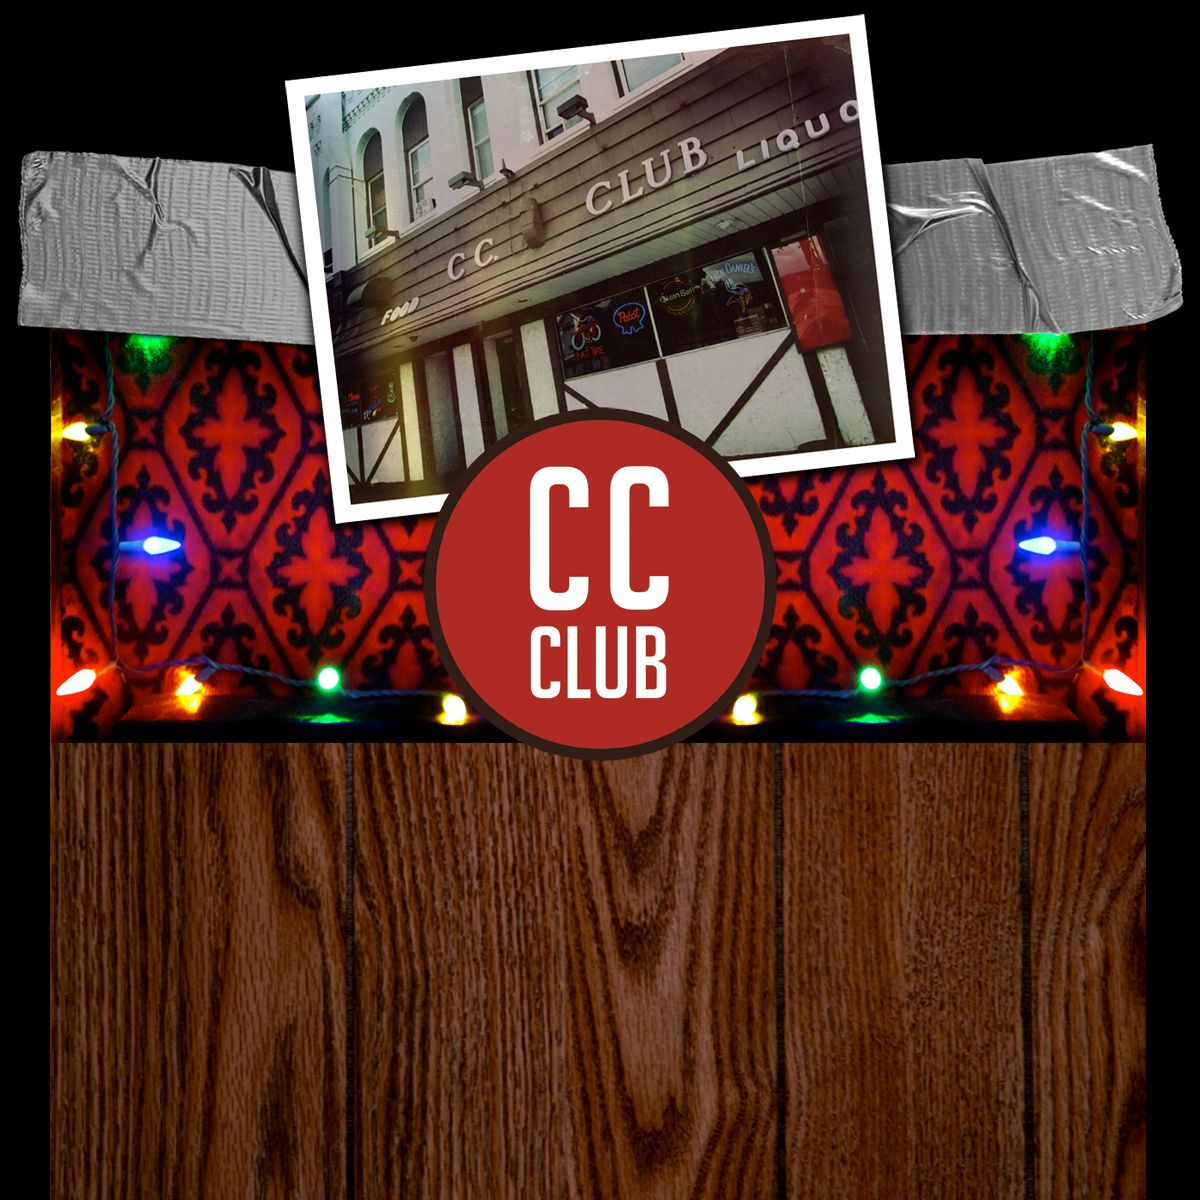 Cc Club Bar Twin Cities Rock And Roll Minnesota